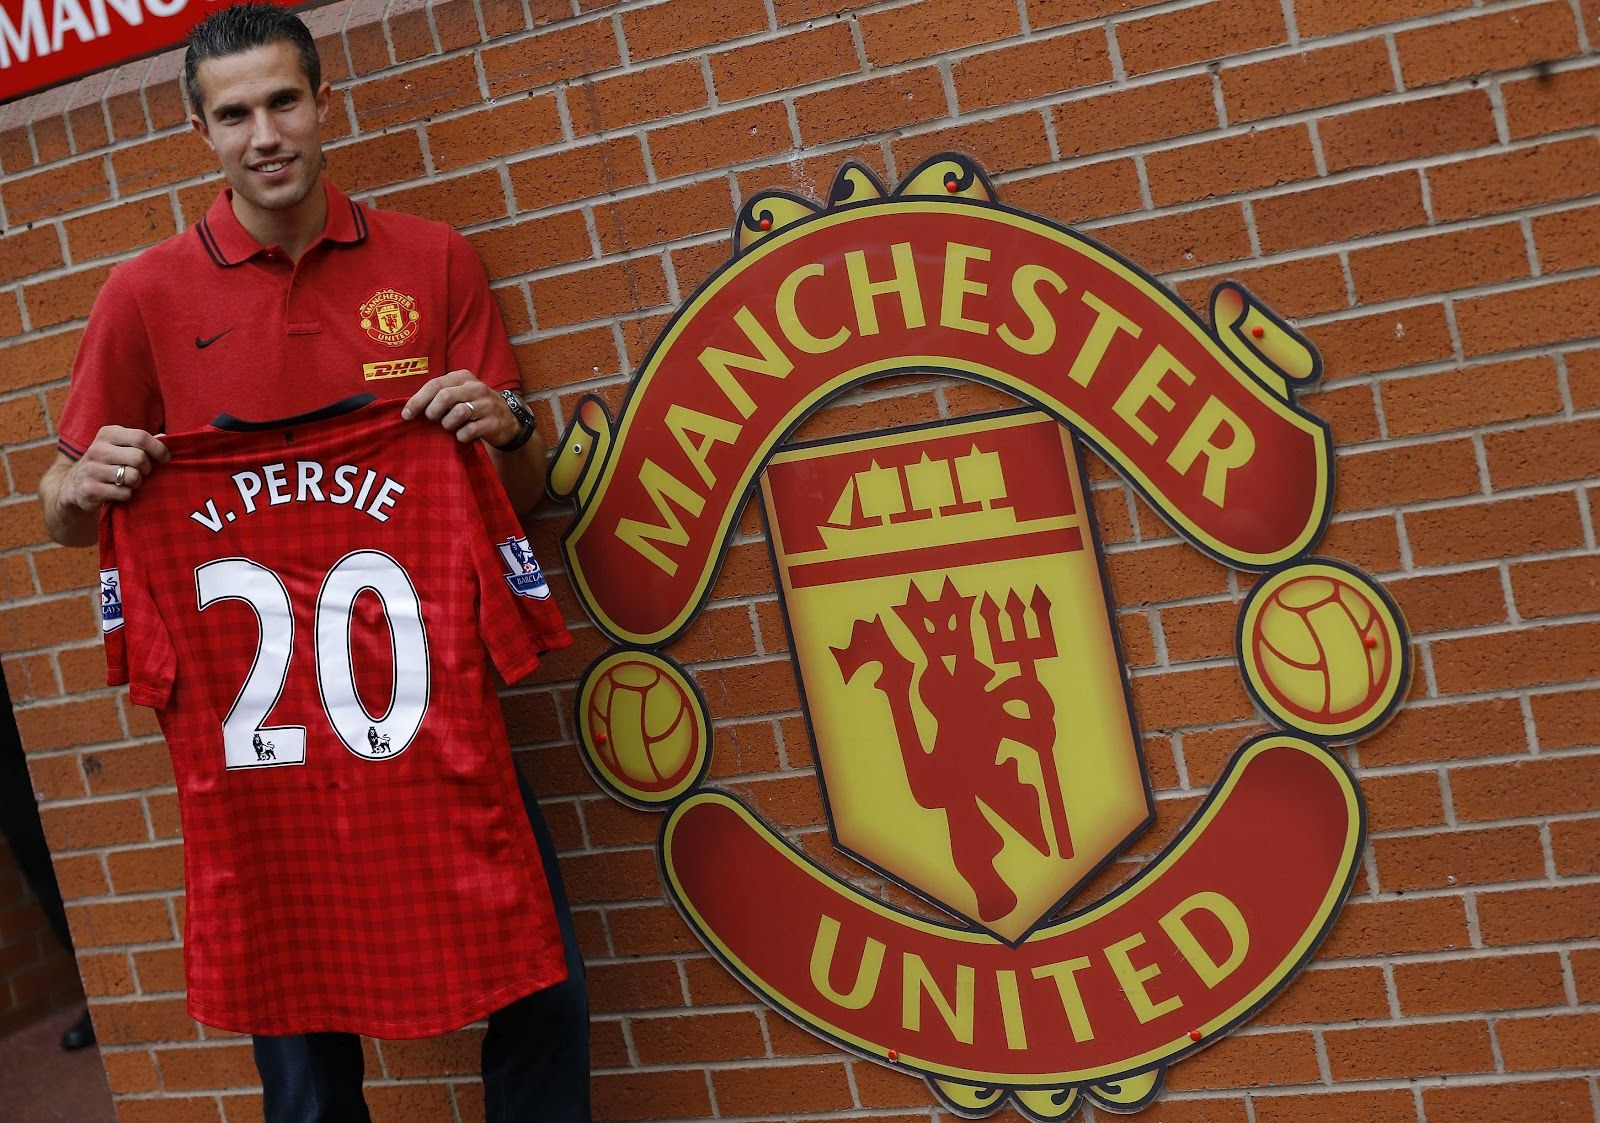 Oh it's on now! Manchester united images, The unit